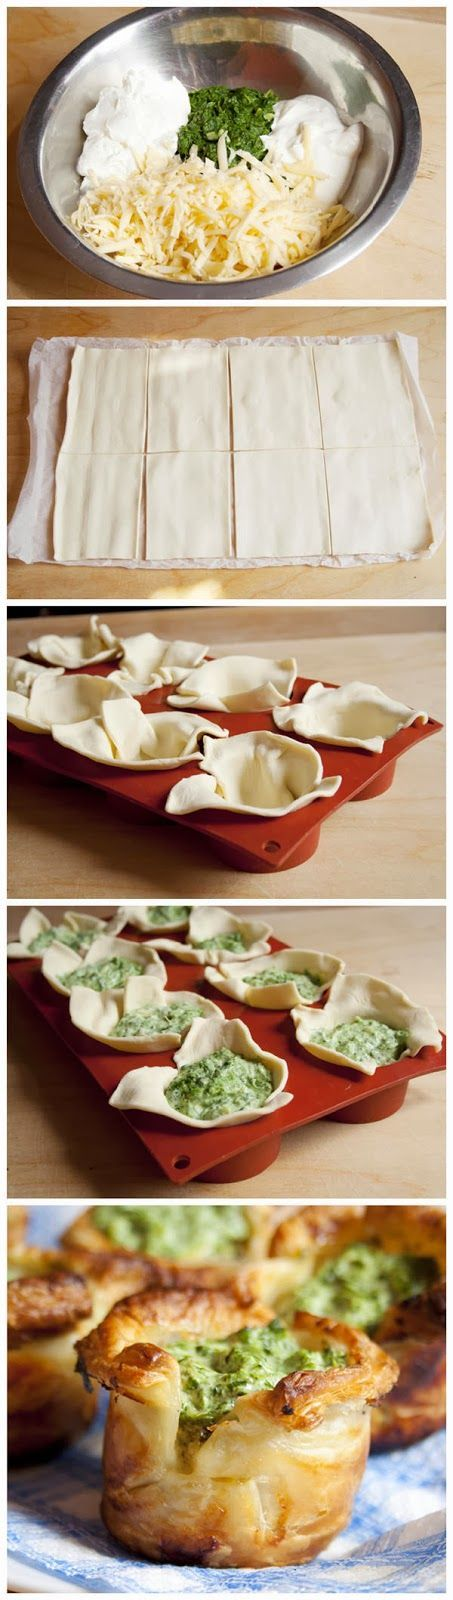 1000+ images about Appetizers and Dips on Pinterest ...